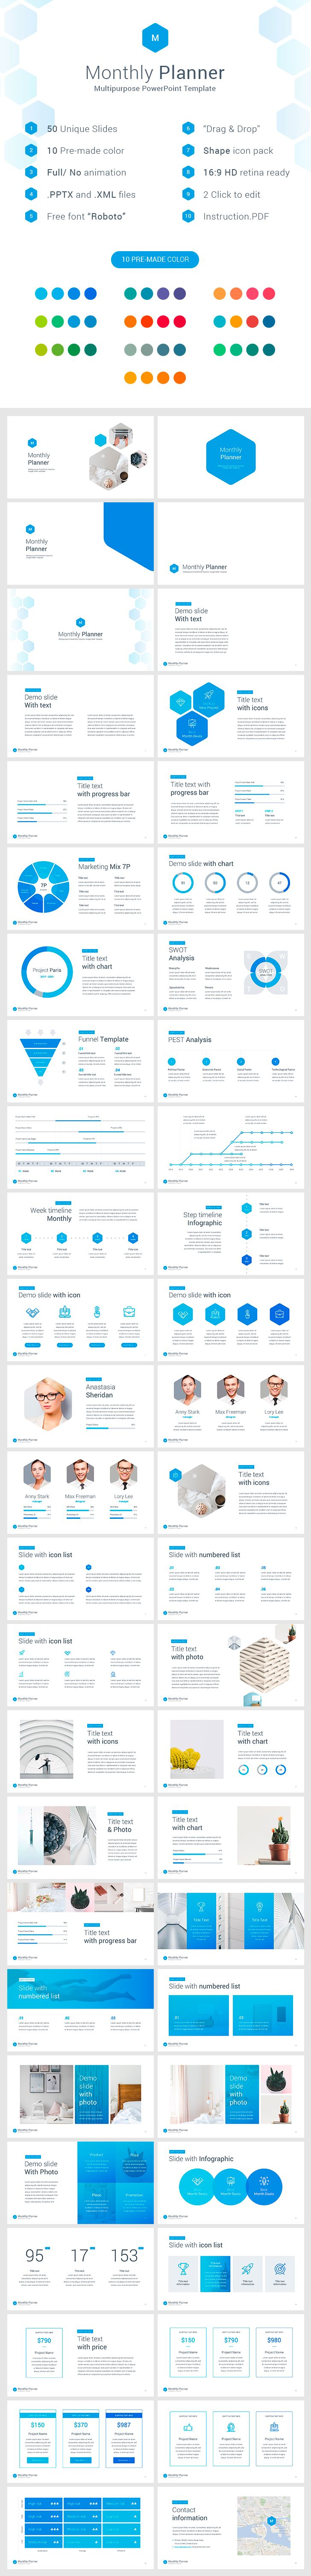 57 besten powerpoint template bilder auf pinterest animation